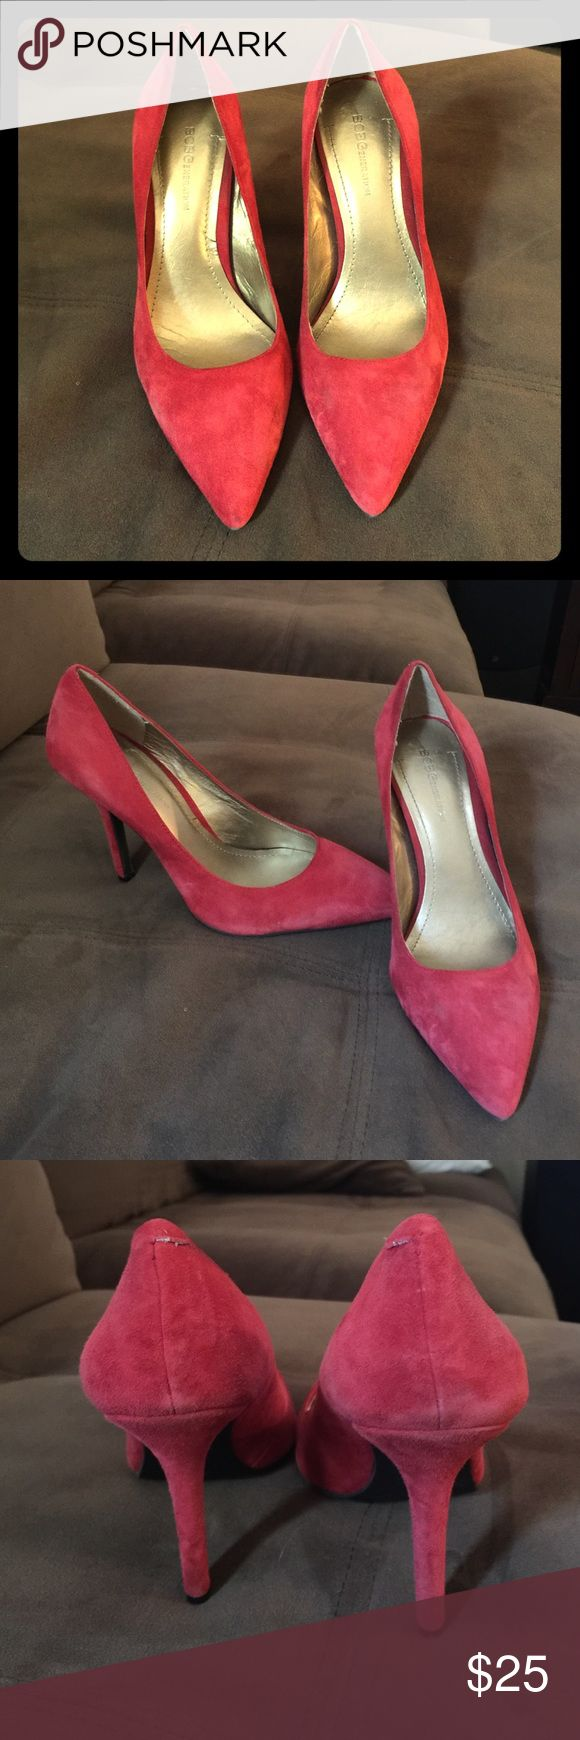 Bcbg heels--weekend sale!! 🎉 Red suede heels size 7 only worn a couple times BCBG Shoes Heels